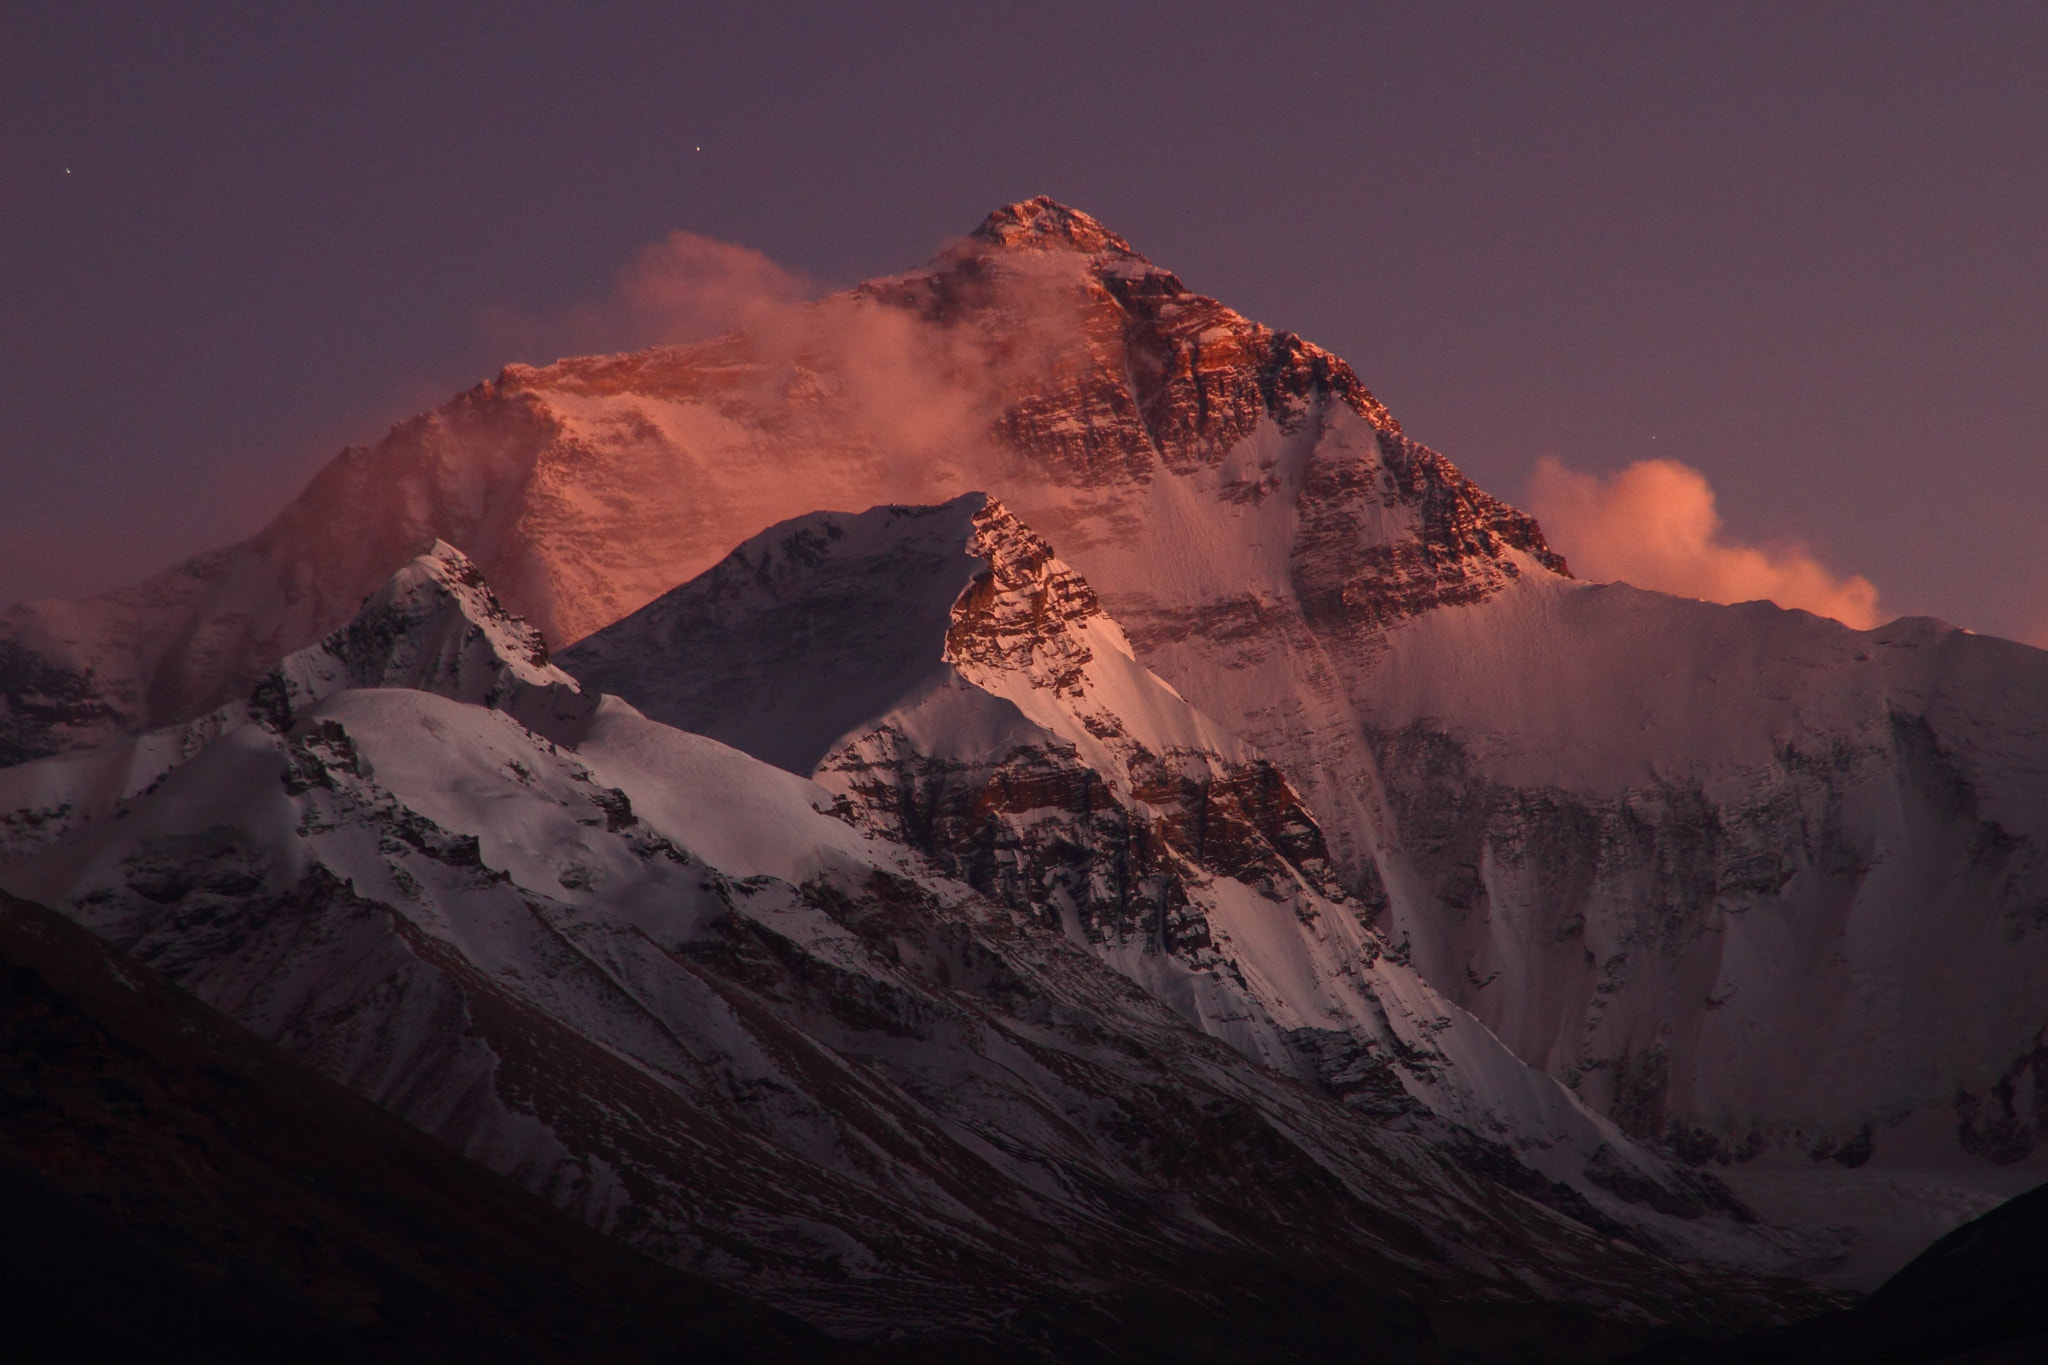 Photograph Mount Everest, Tibet by Charles Lacy on 500px